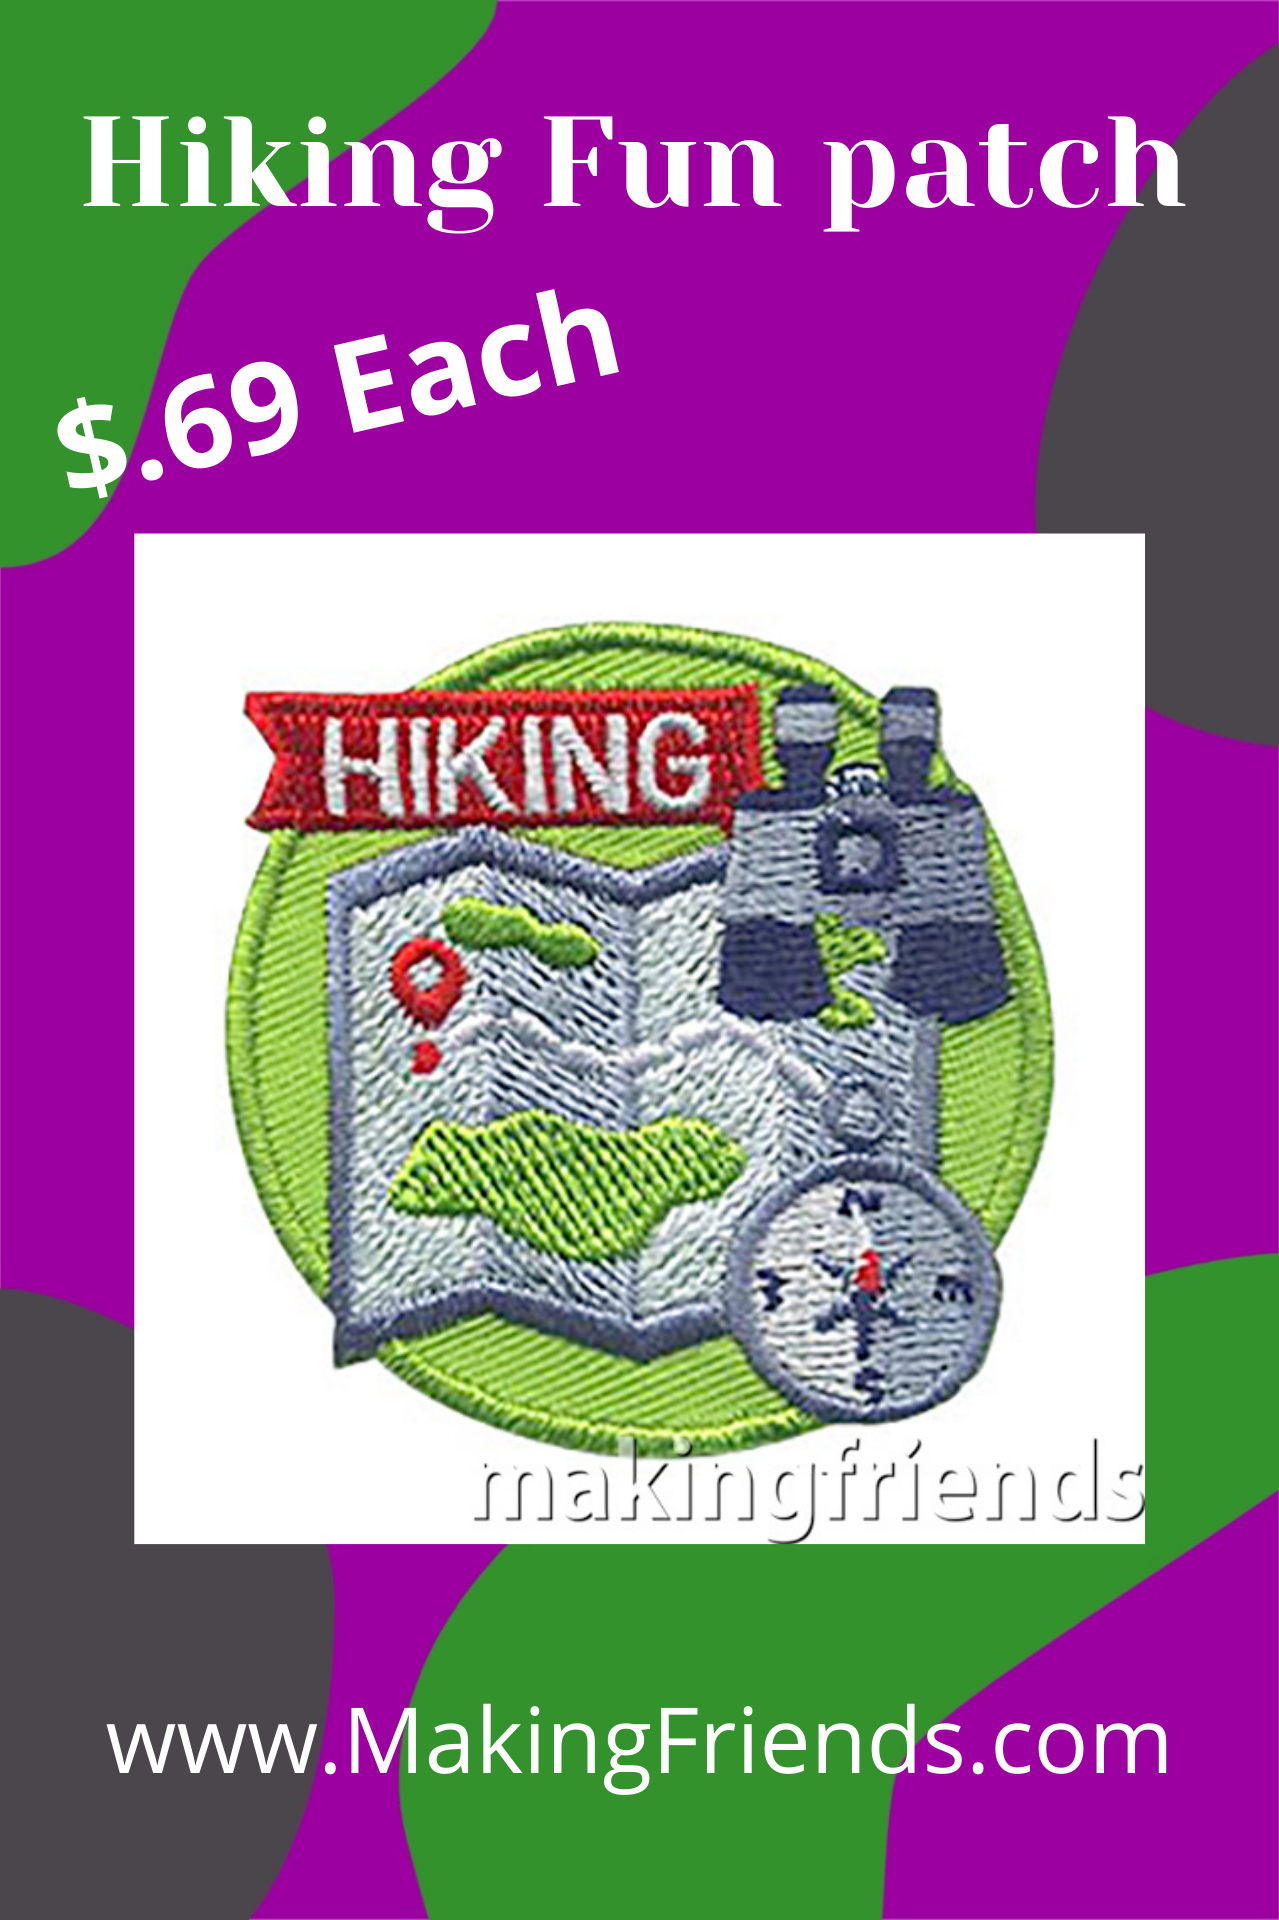 Hiking Patch -- Map. Teach your scouts some basic hiking skills.  See our suggested hiking skills below. This Hiking Patch from MakingFriends®.com is a great reminder of the skills they learned and fun they had on their hike.  #makingfriends #hiking #hikingpatch #funpatch #gspatch via @gsleader411